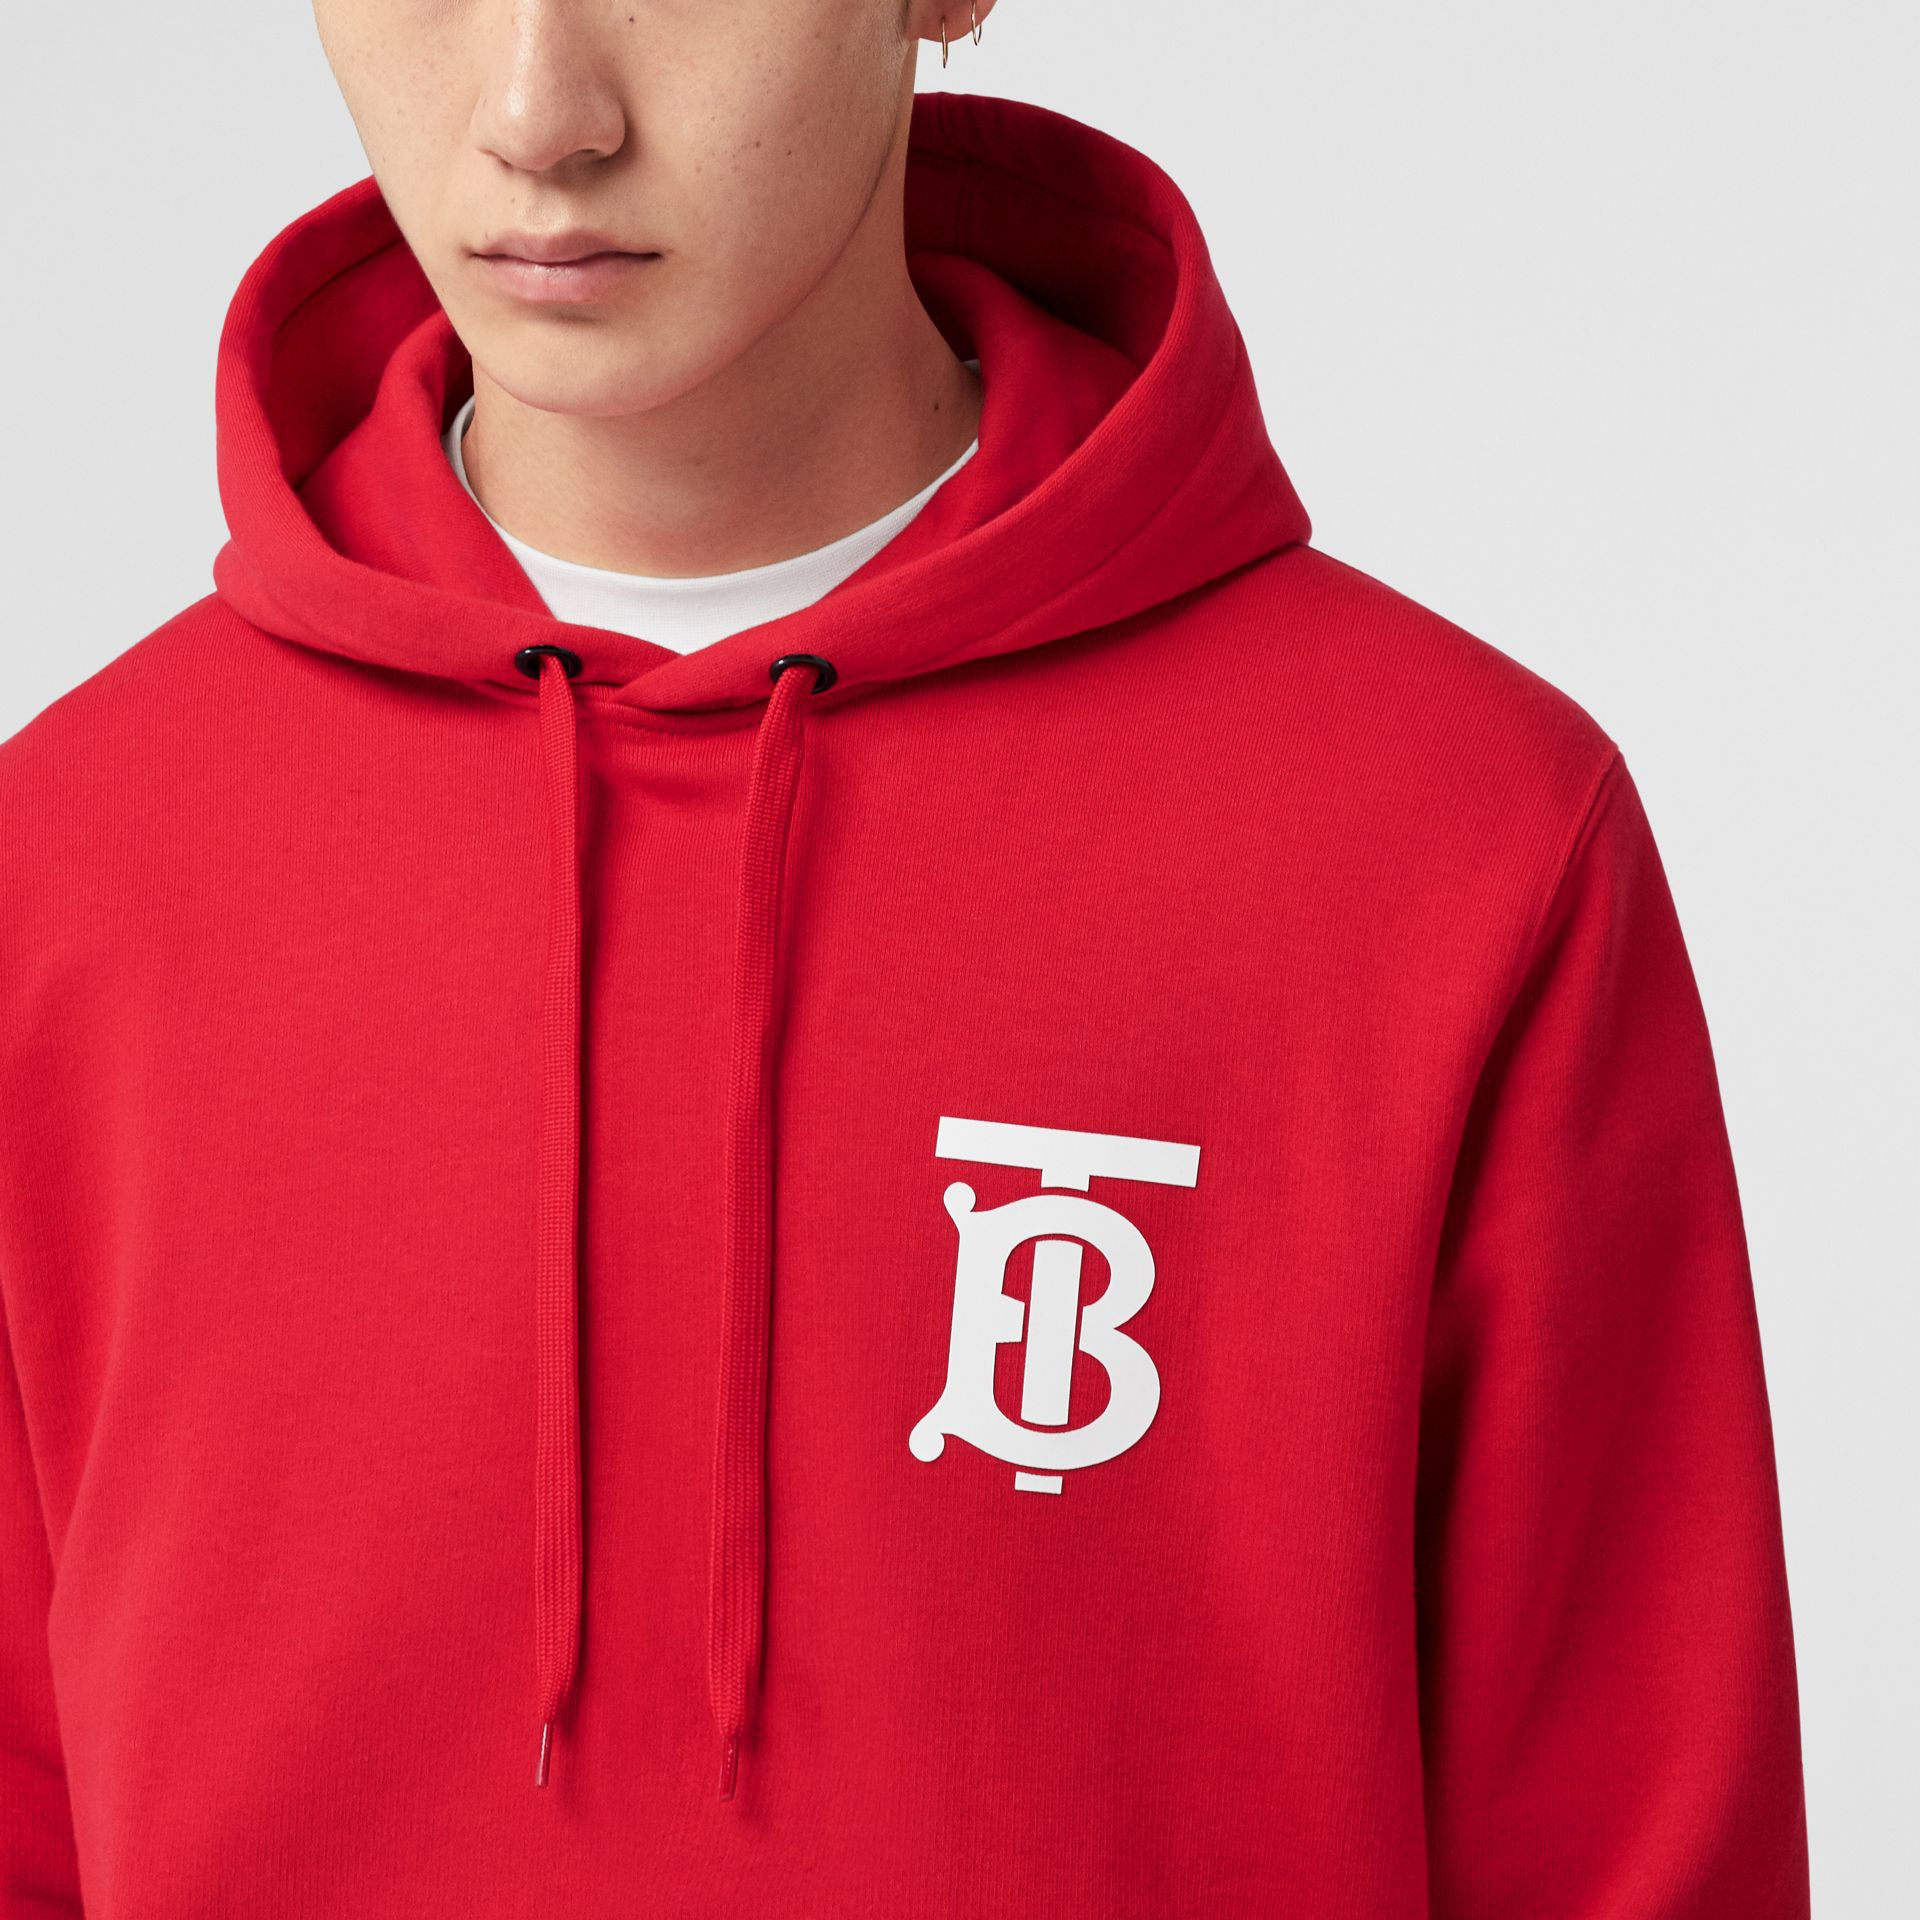 Monogram Motif Cotton Hoodie in Bright Red - Men | Burberry - gallery image 5